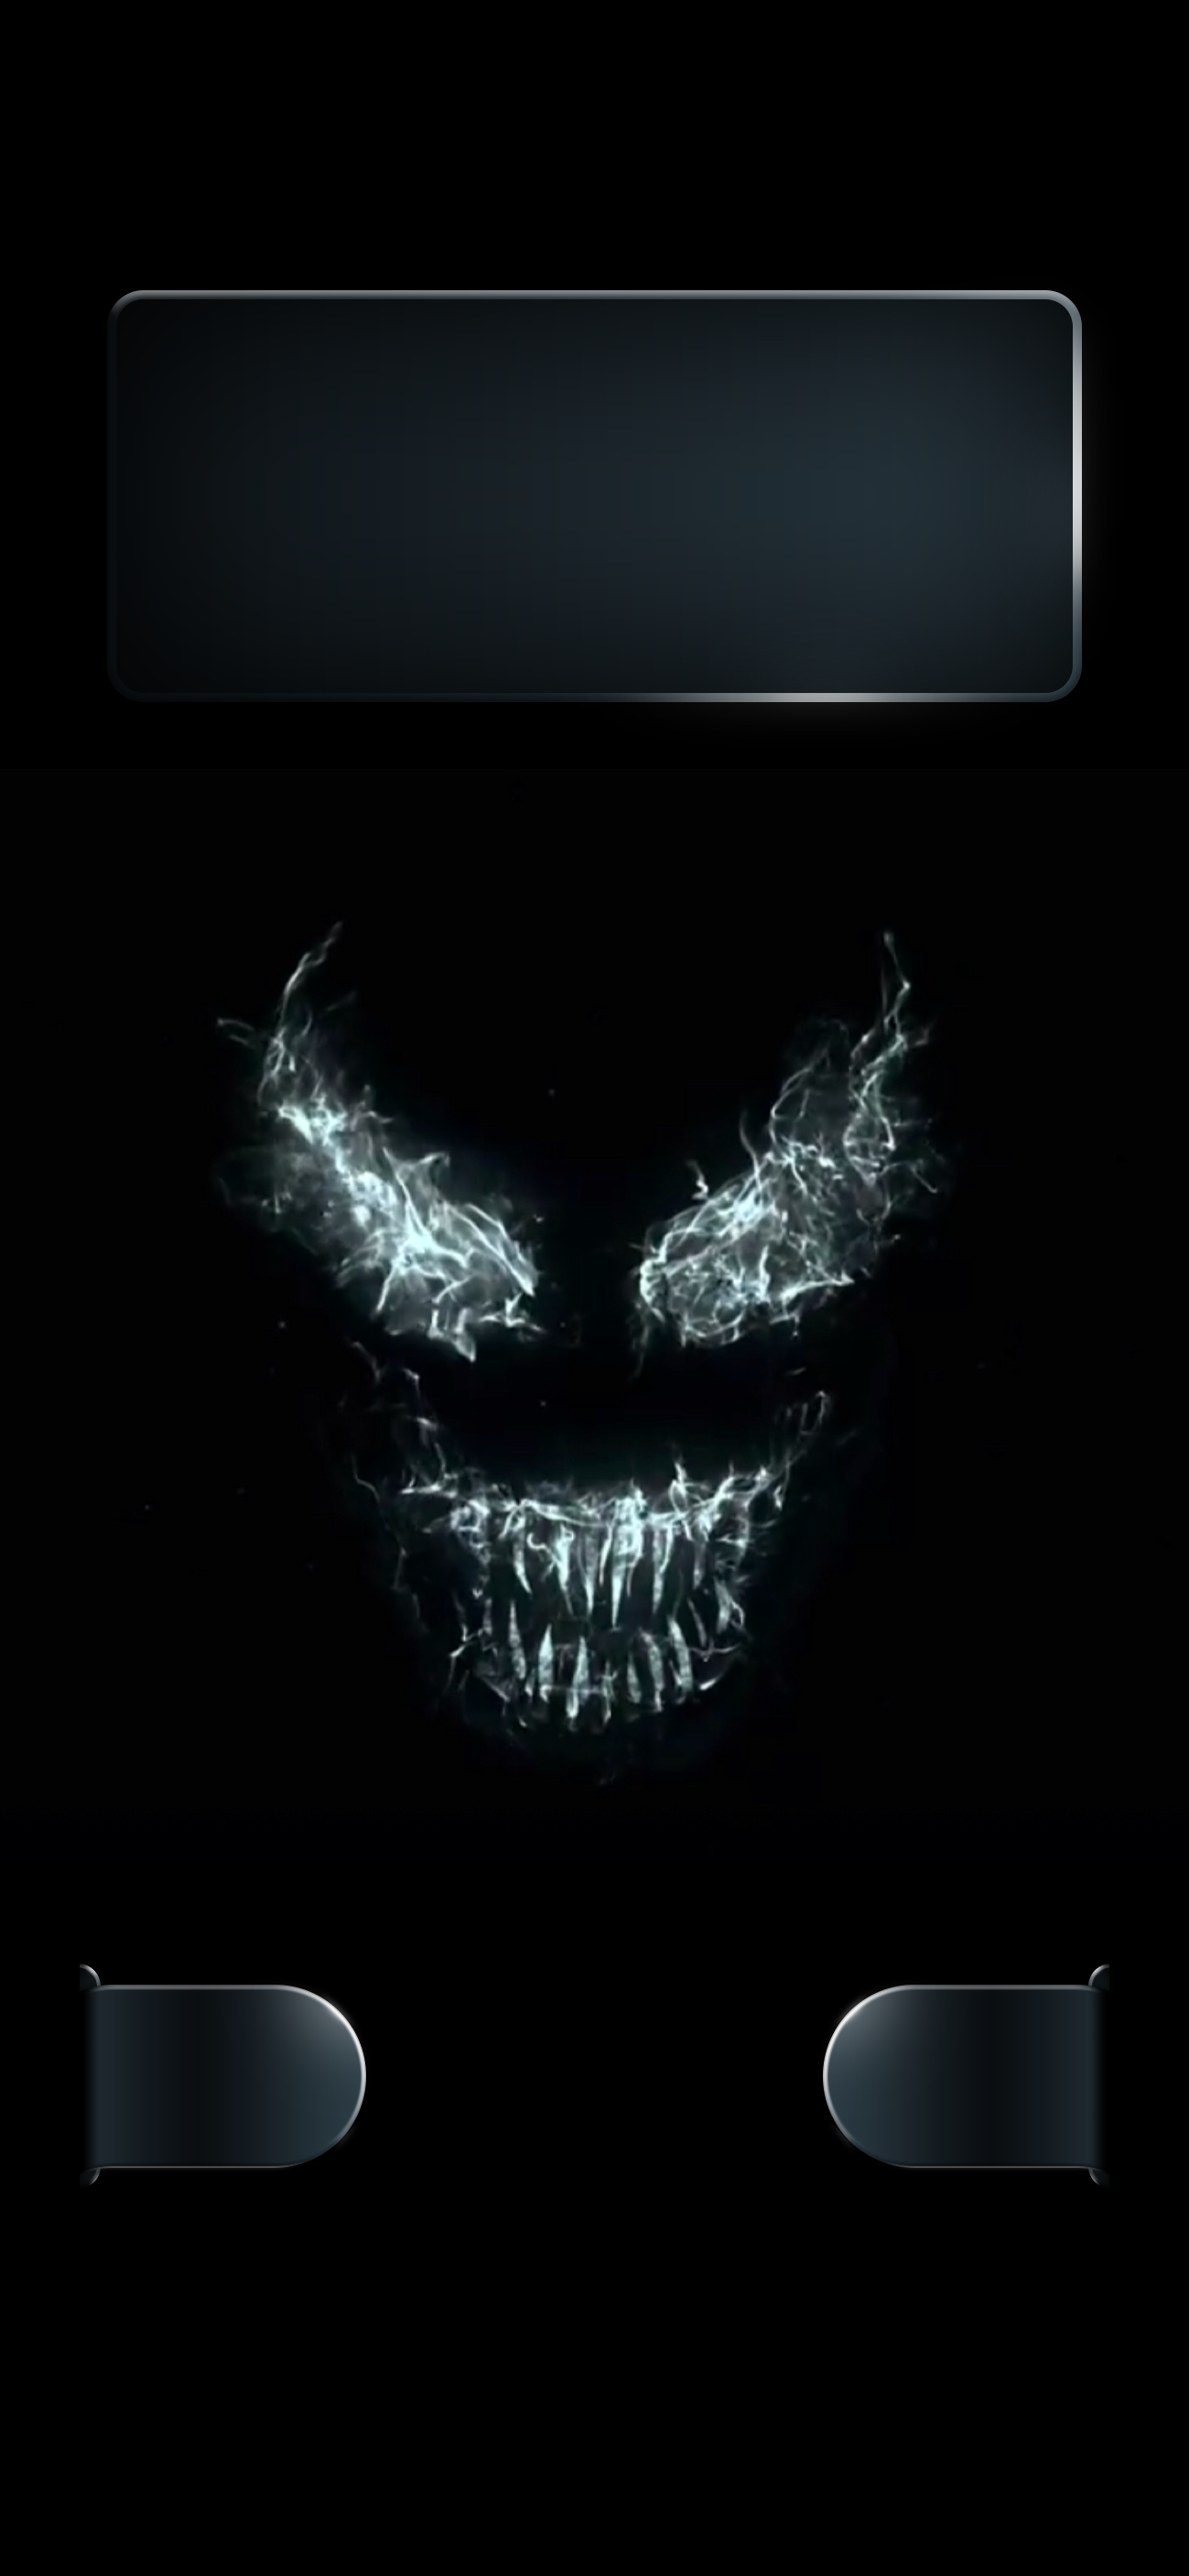 Venom Wallpaper Iphone X Wallpaper Iphone Boho Iphone